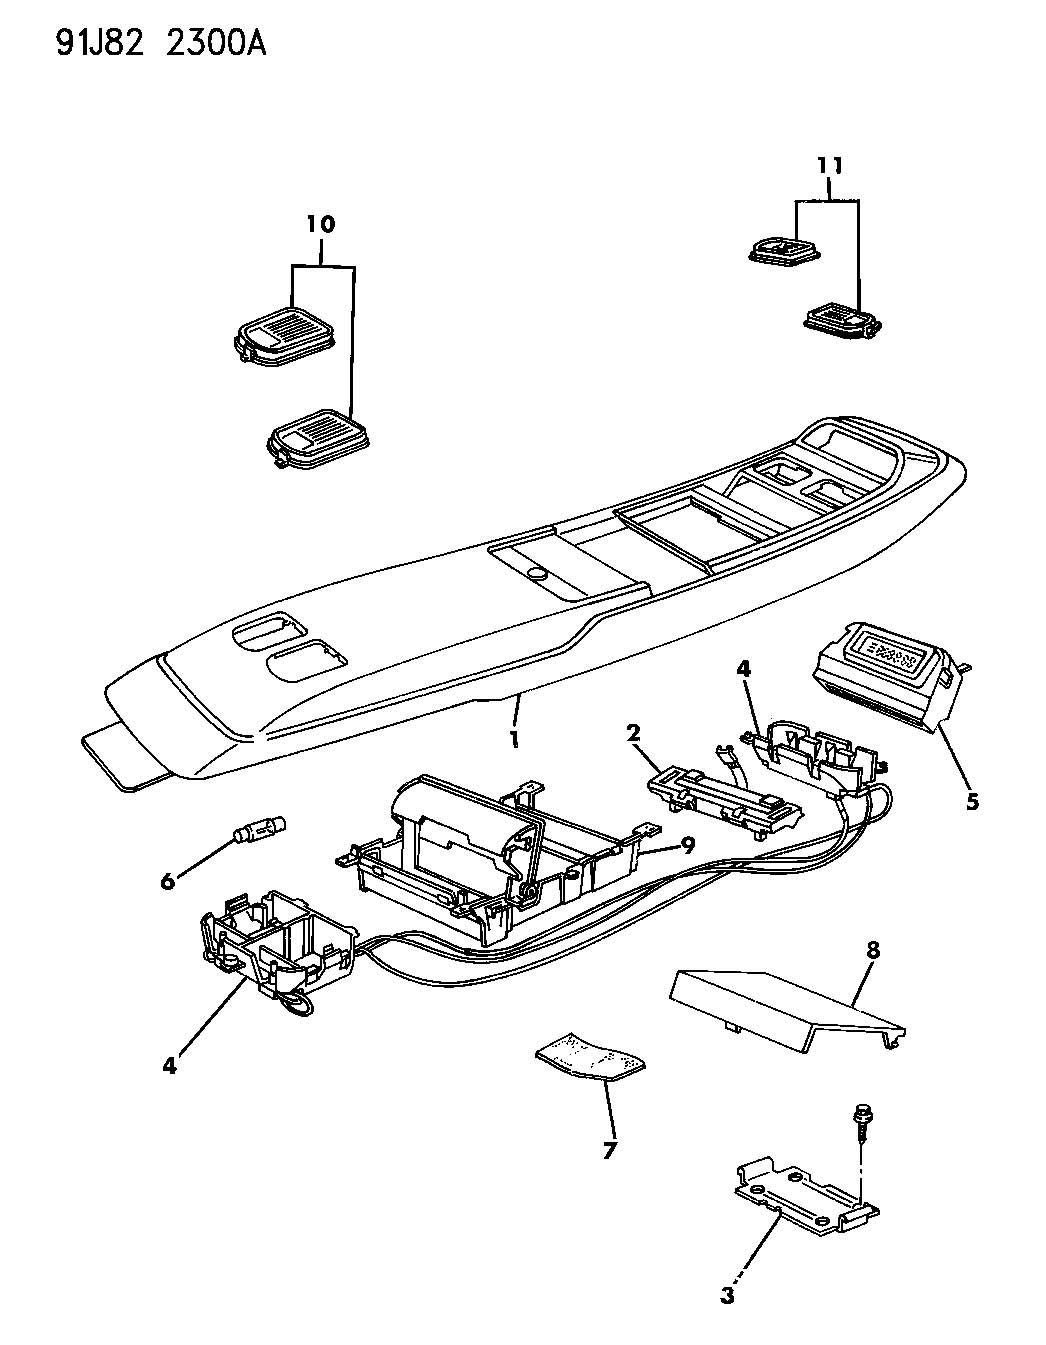 91 jeep cherokee wiring console